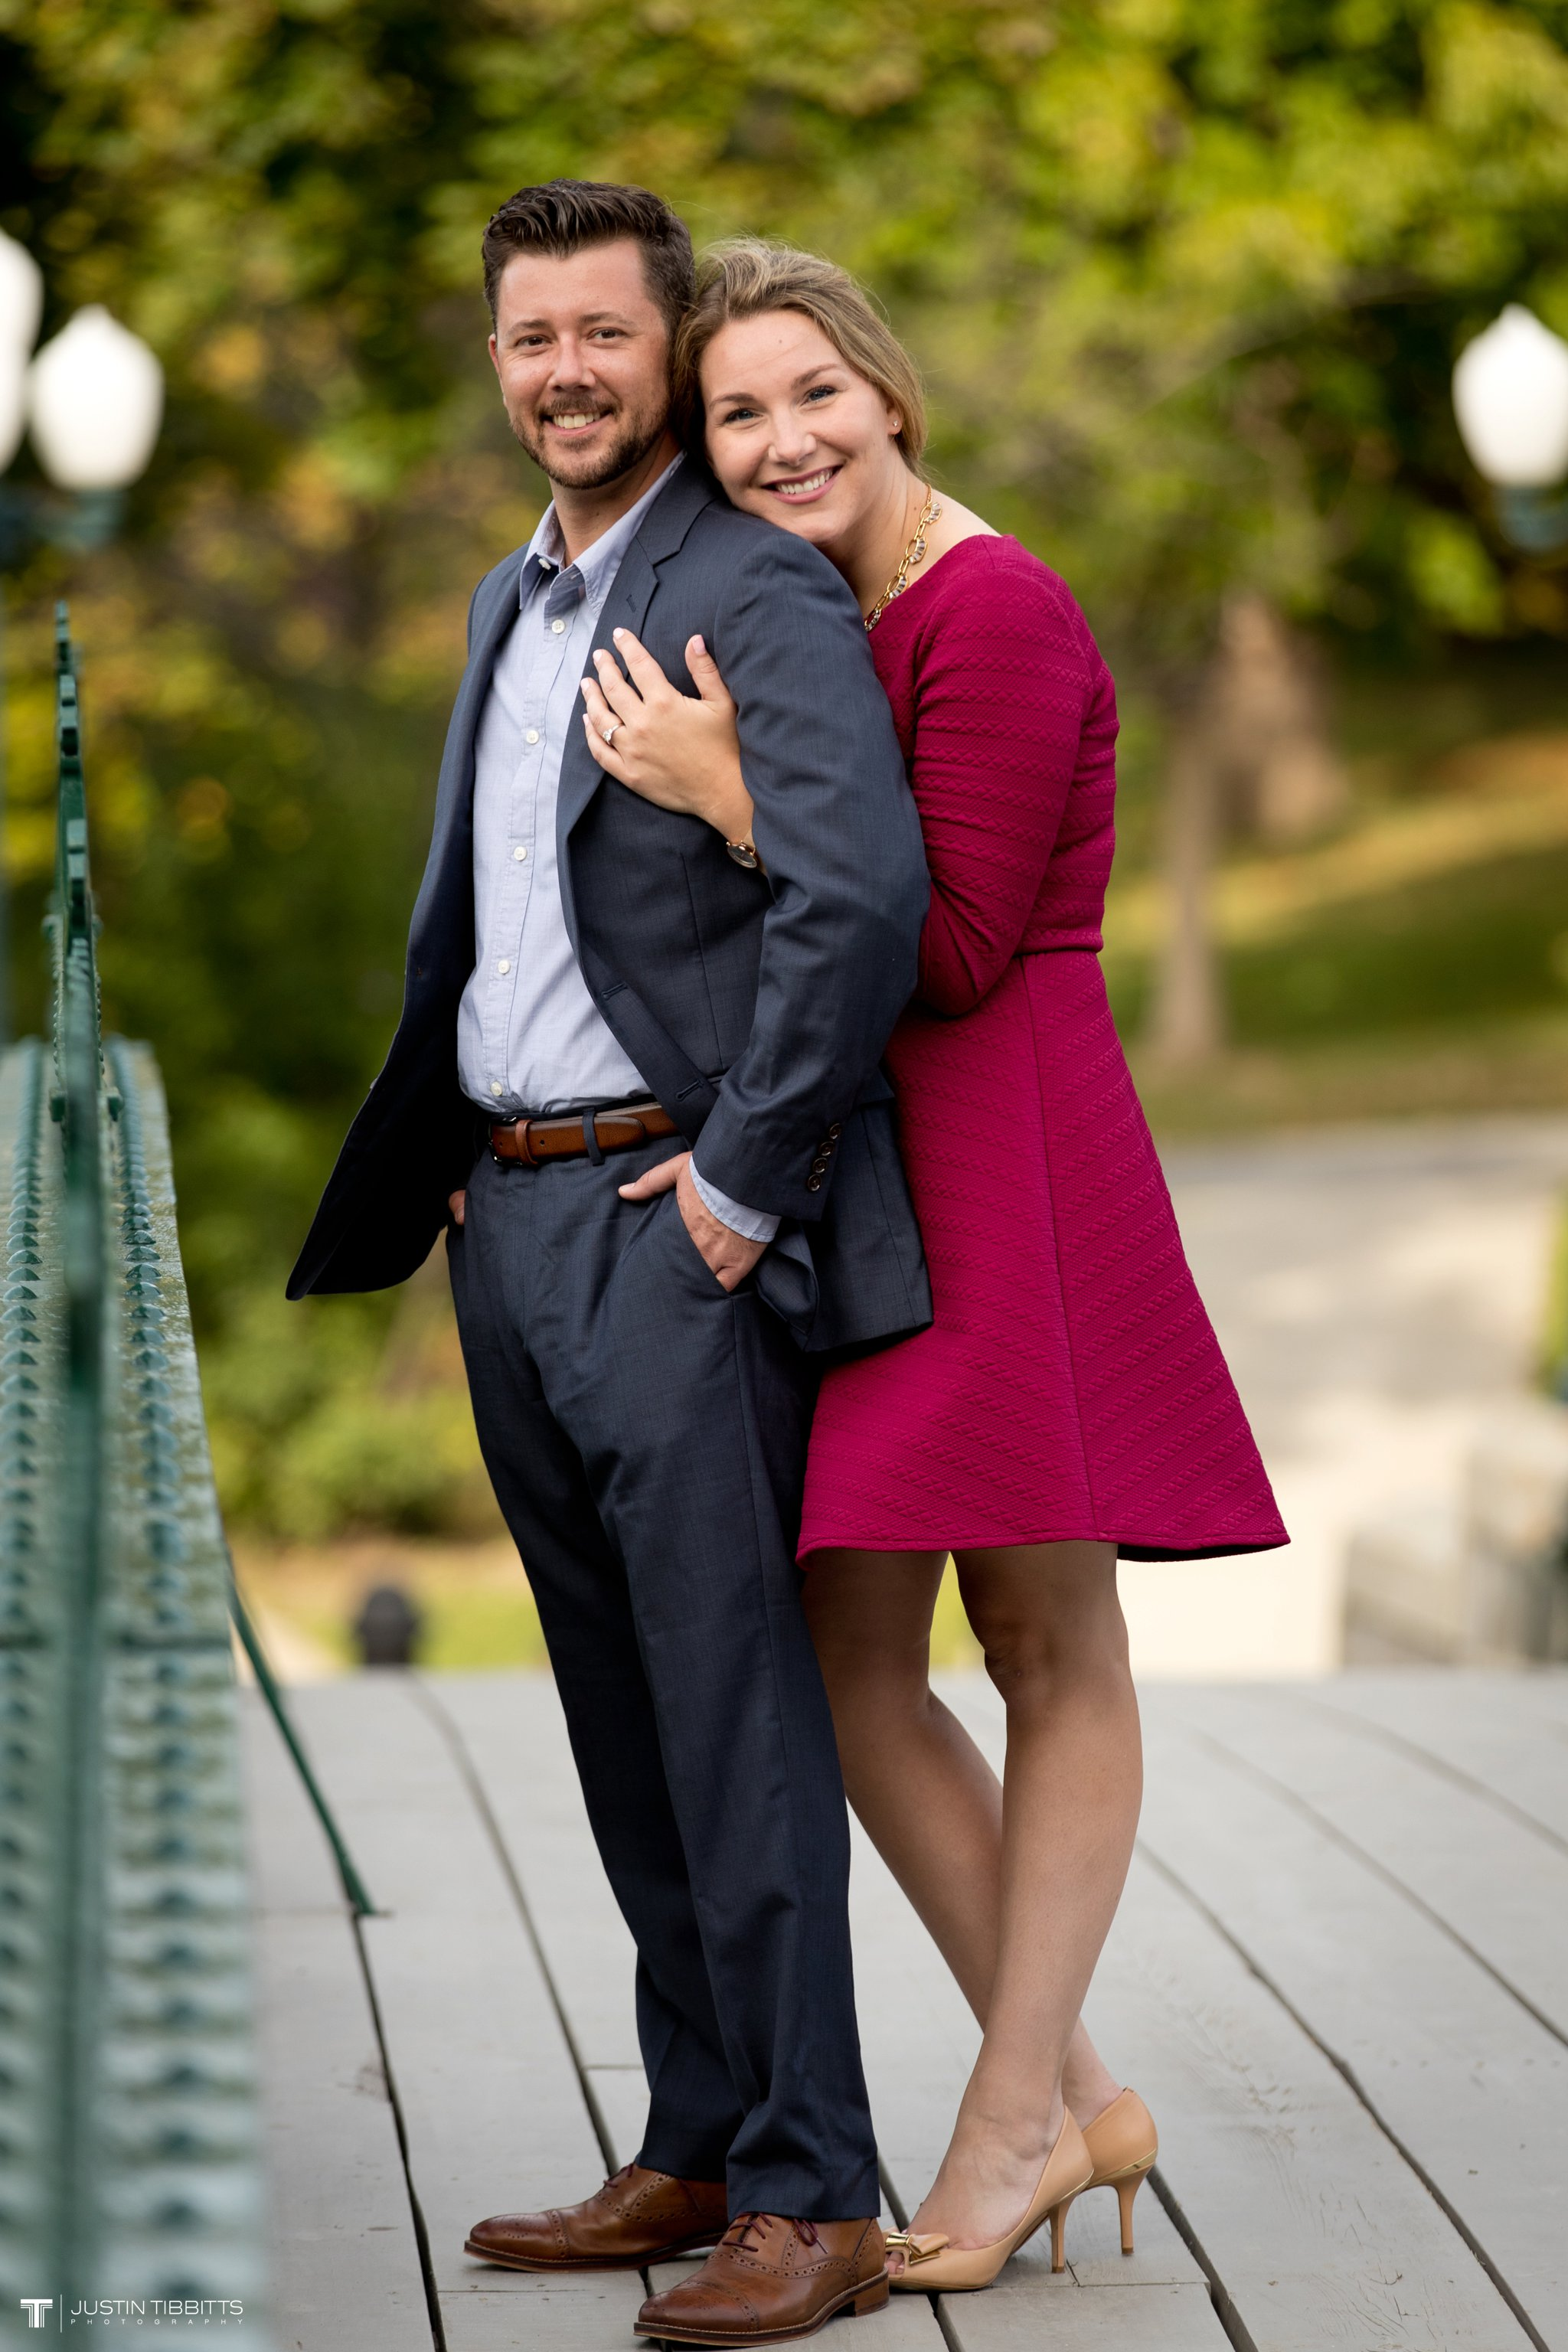 washington-park-albany-ny-engagement-photos-with-andrea-and-dan_0011